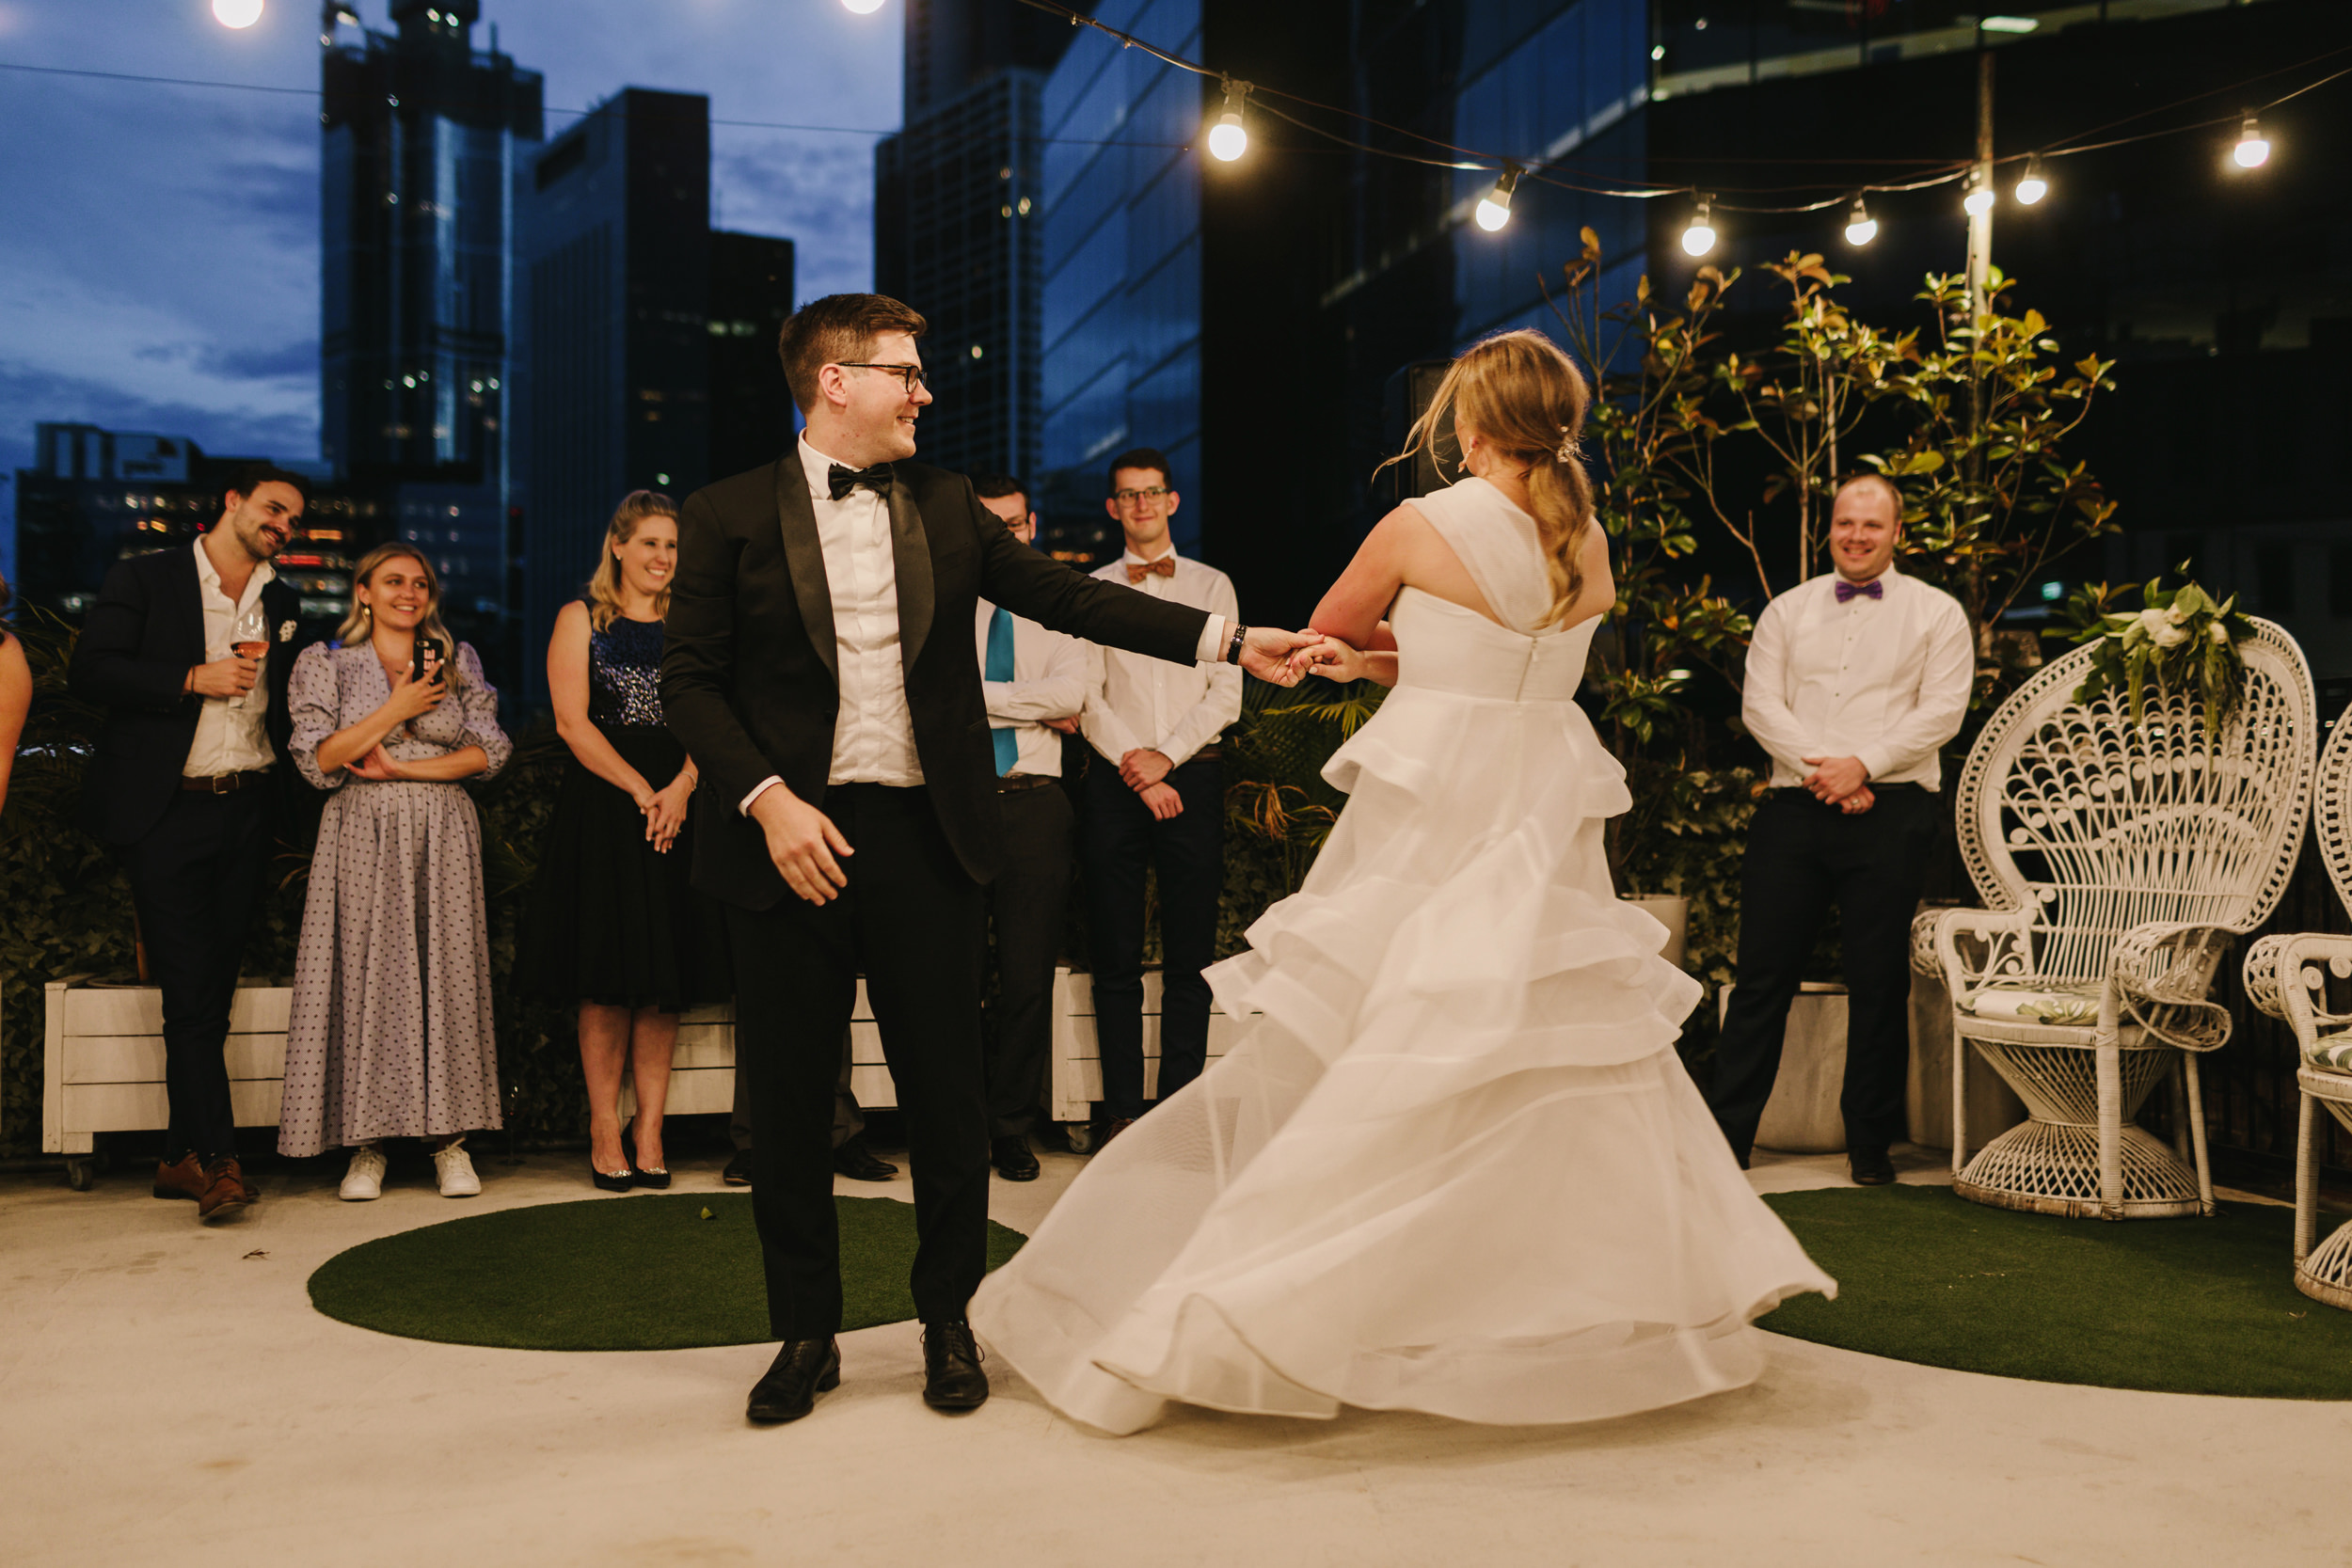 Melbourne_City_Rooftop_Wedding_Tyson_Brigette134.JPG